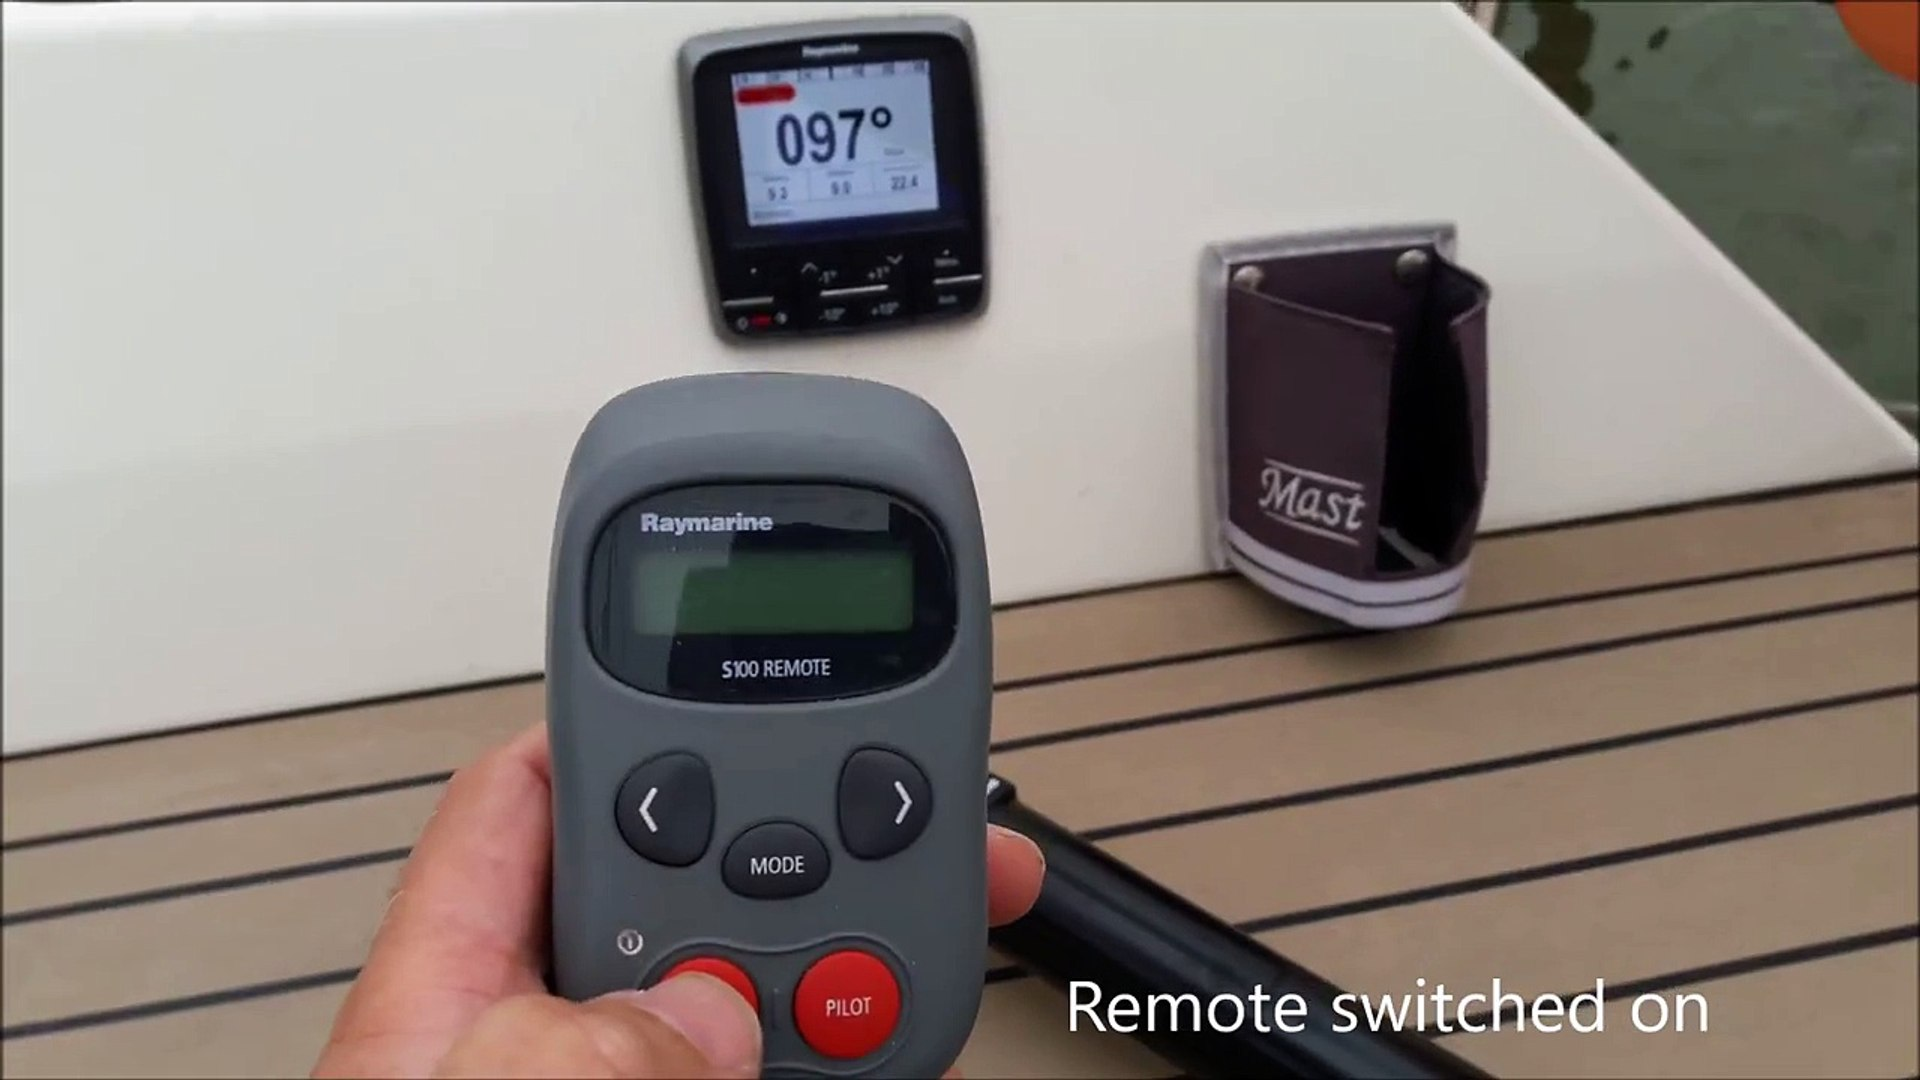 Raymarine S100 remote connects to EVO100 autopilot